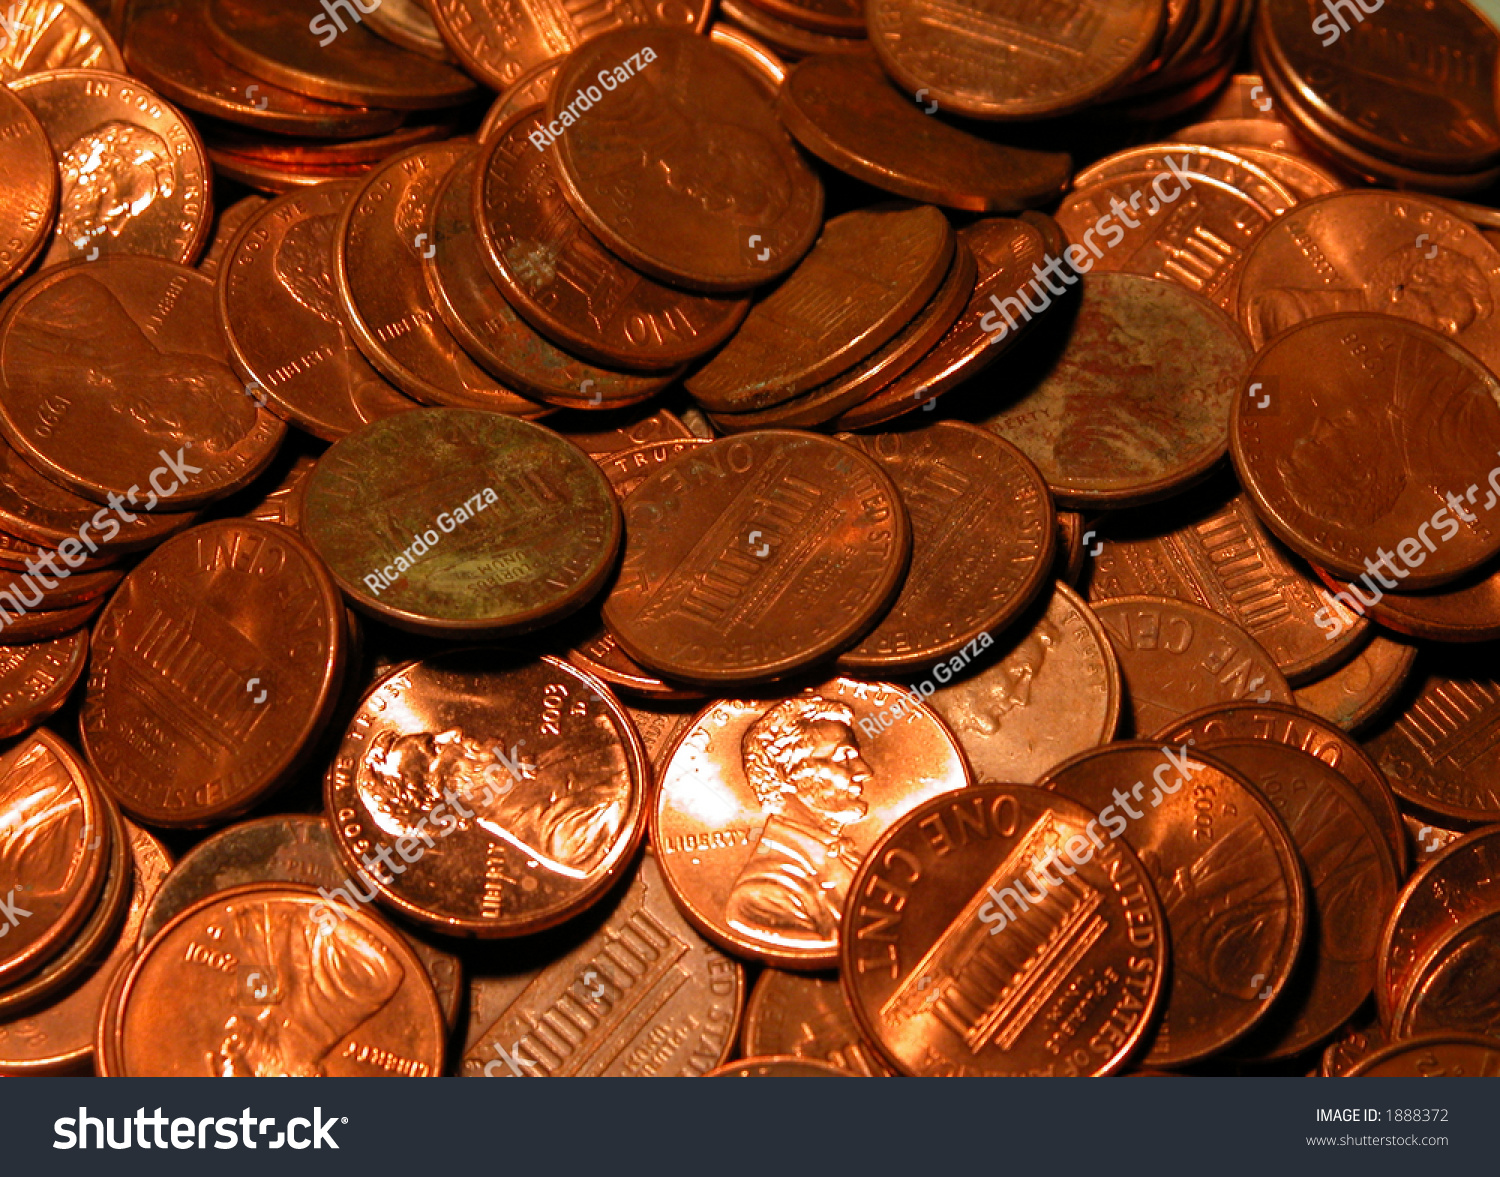 how to clean a bunch of pennies